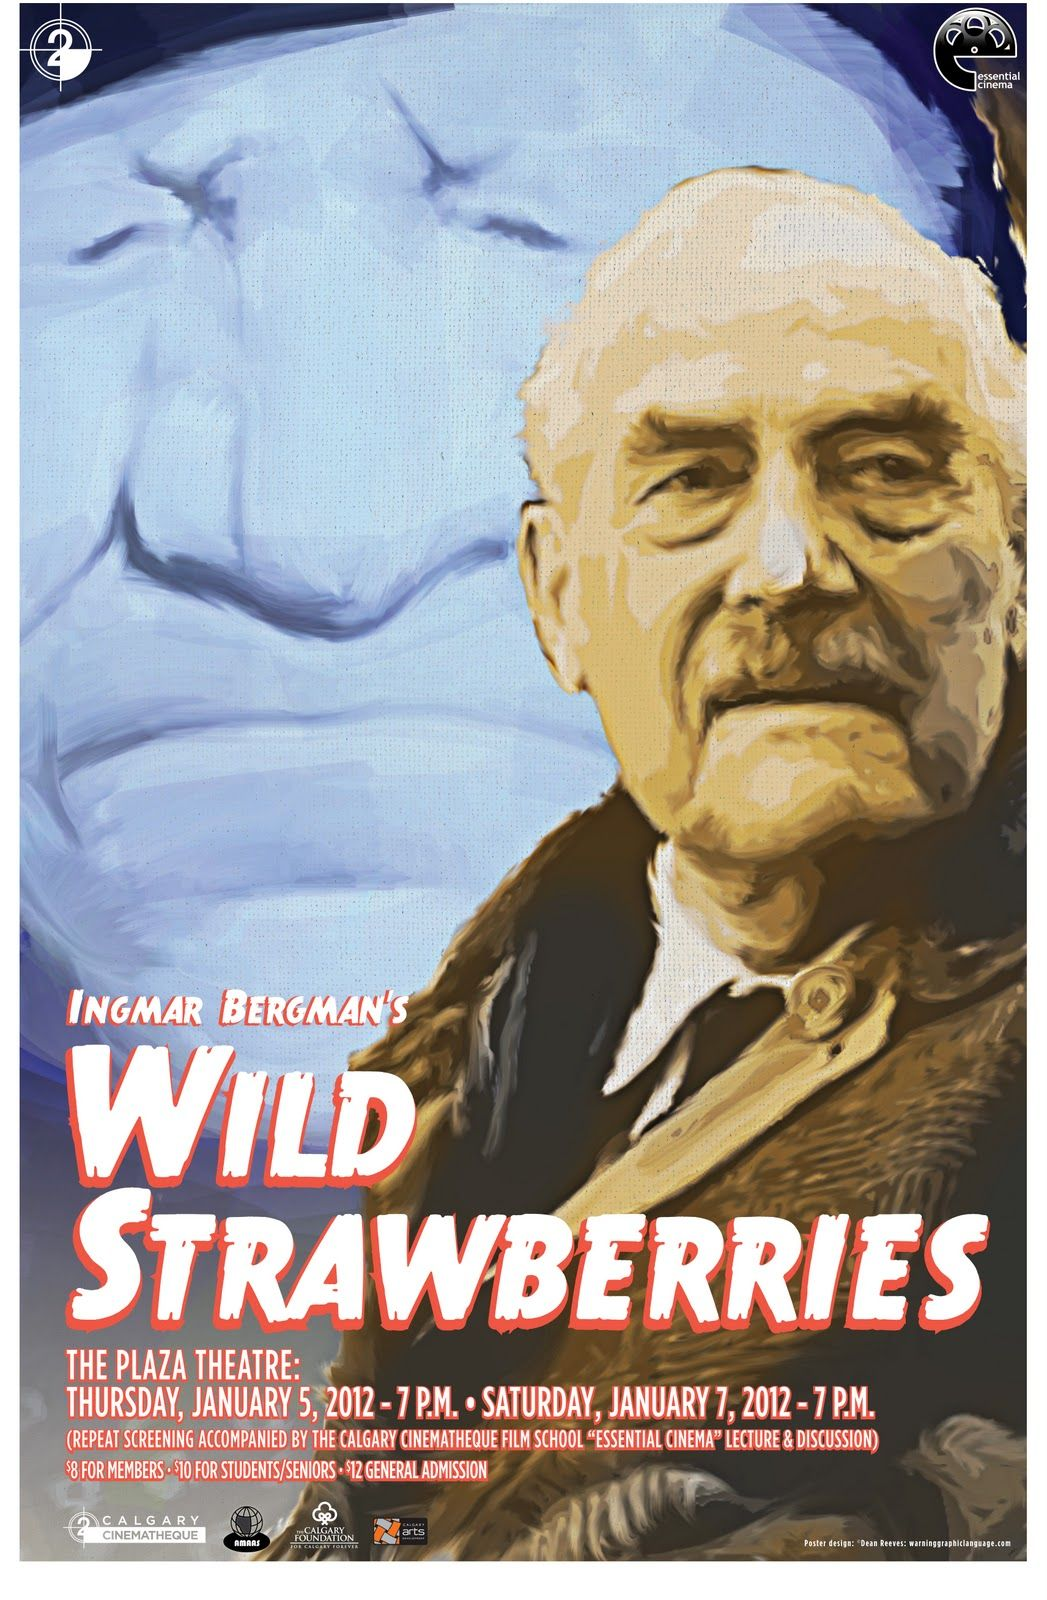 The Man Who Should Be There Ingmar Bergman's Strawberries